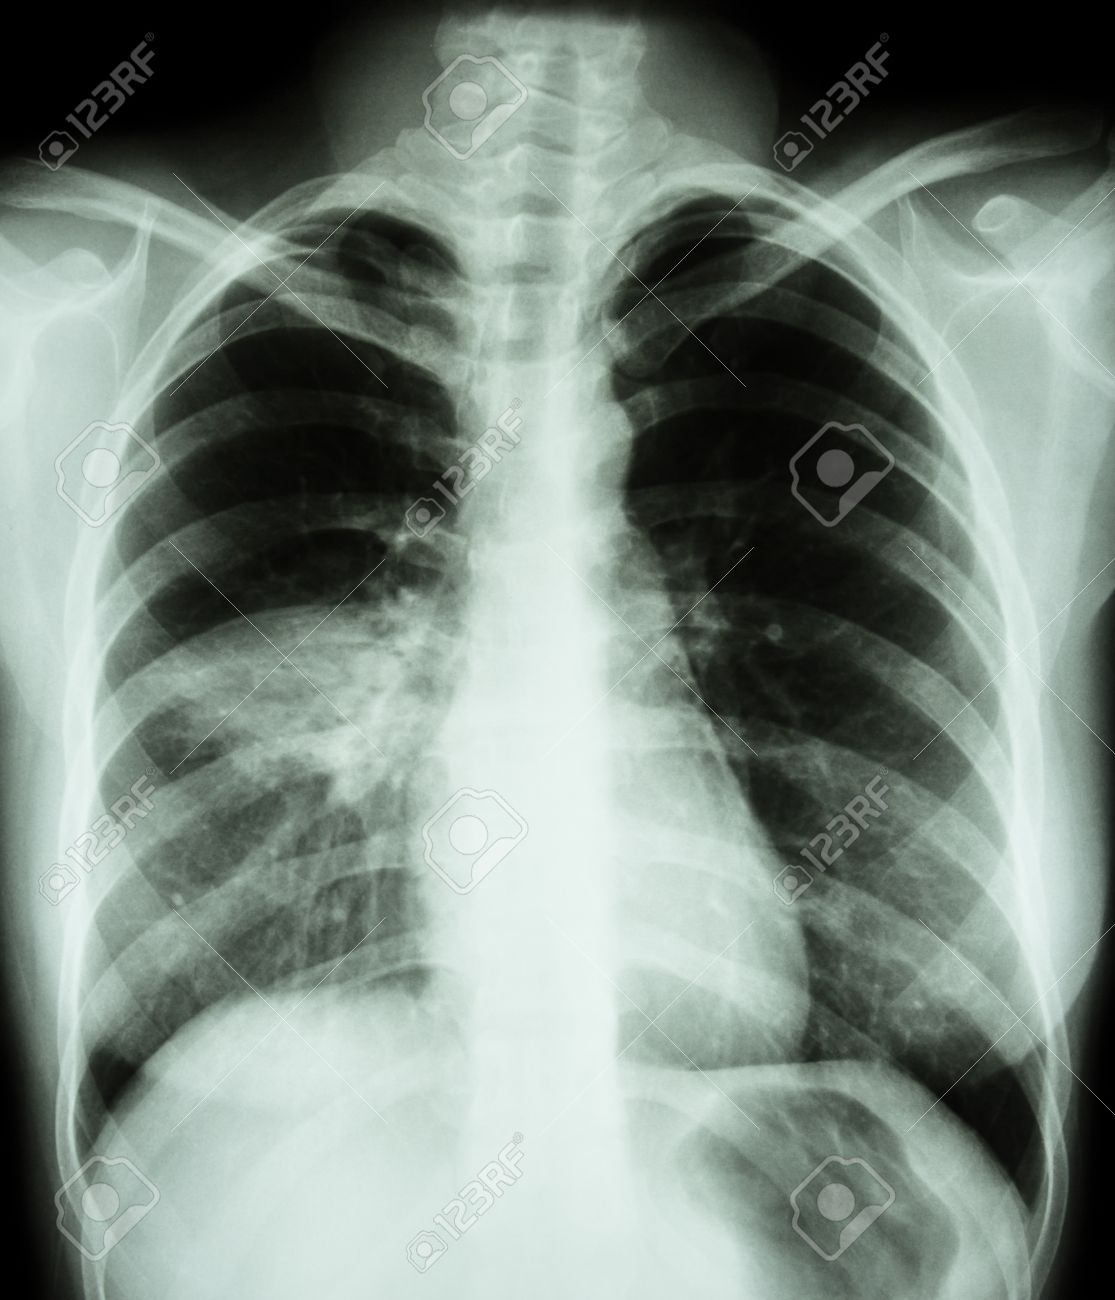 Pneumonia ( film chest x-ray show alveolar infiltrate at right middle lung ) ( image for pulmonary tuberculosis , Mers-CoV , SARS ) - 55067856